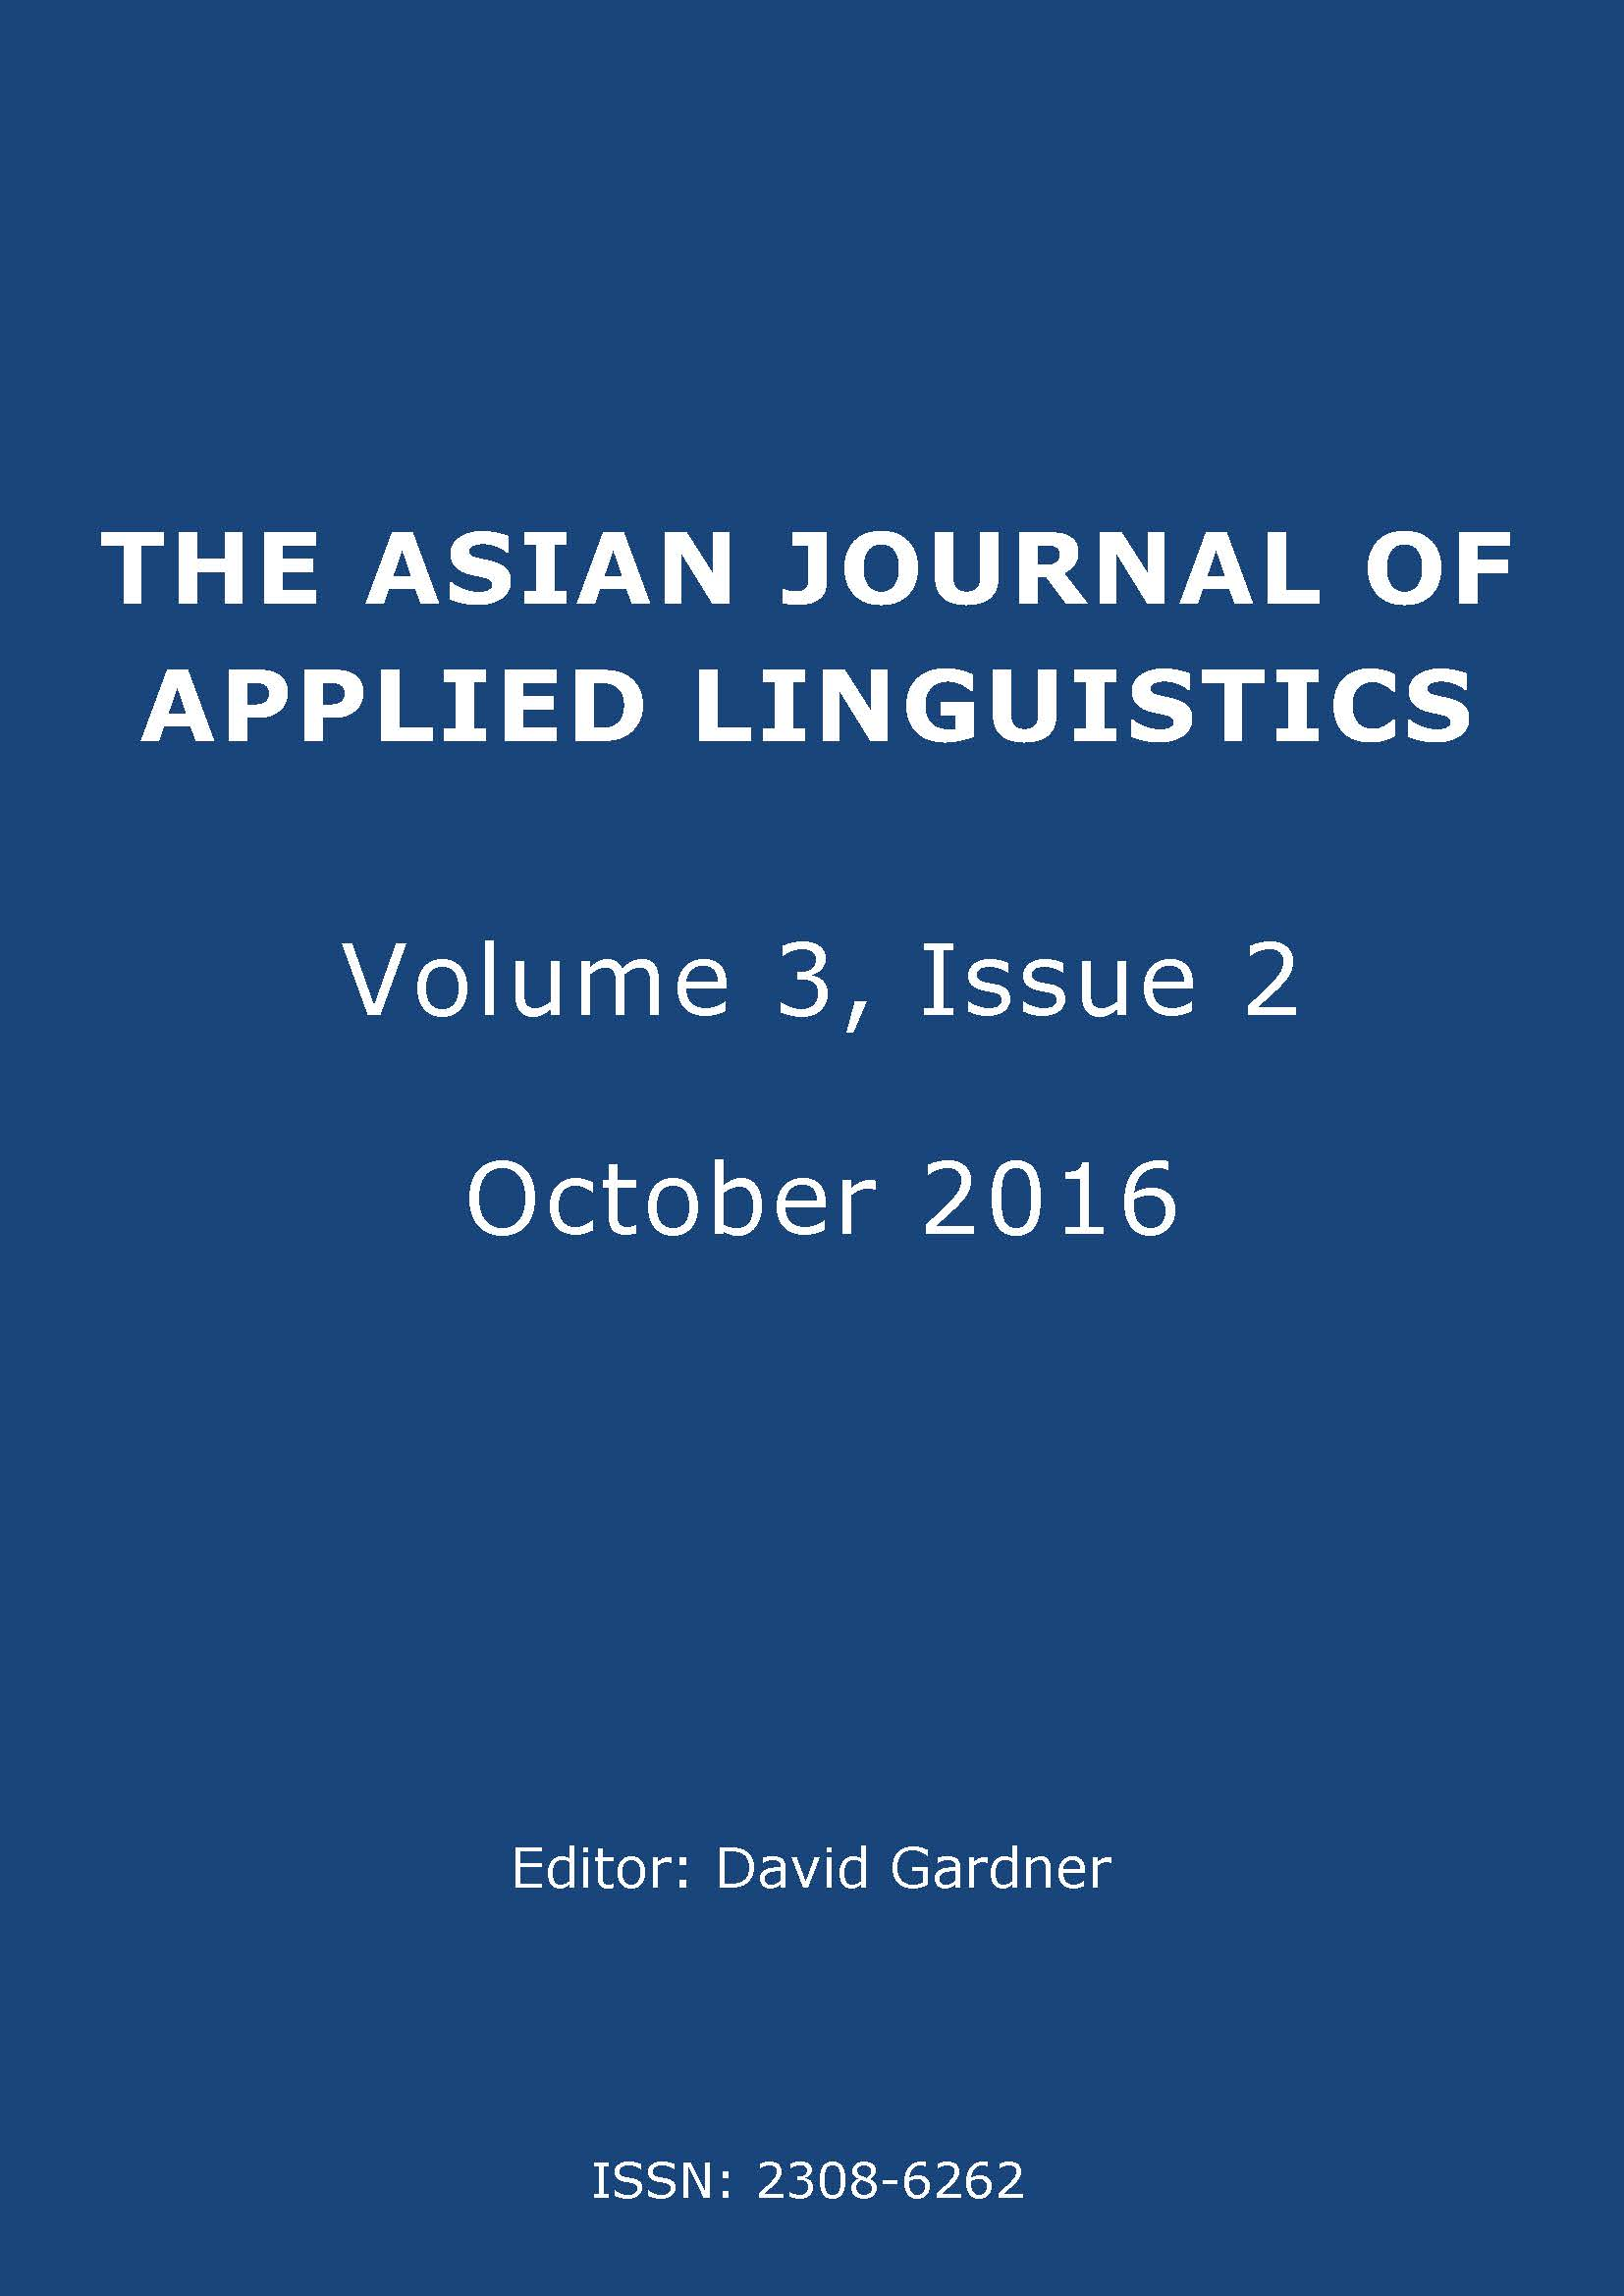 The Asian Journal of Applied Linguistics. Volume 3. Issue 2. October 2016